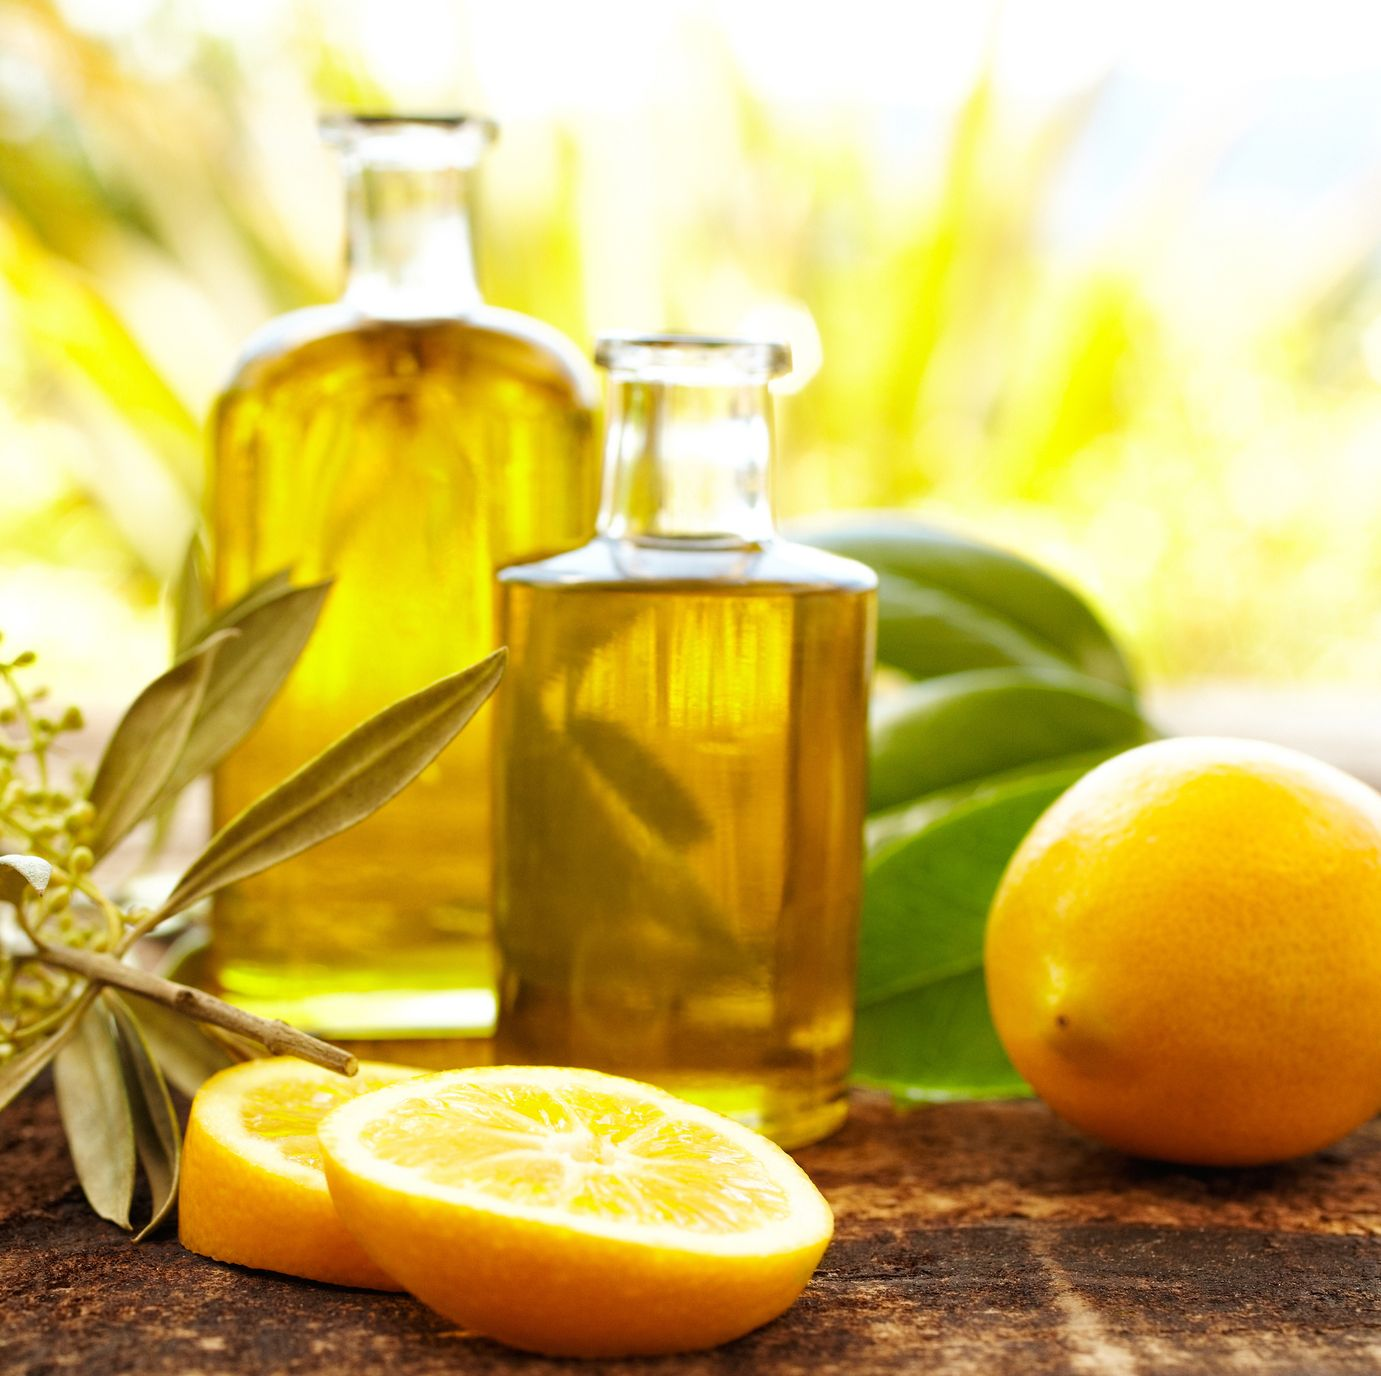 Massage oil bottles with lemons and olive branch